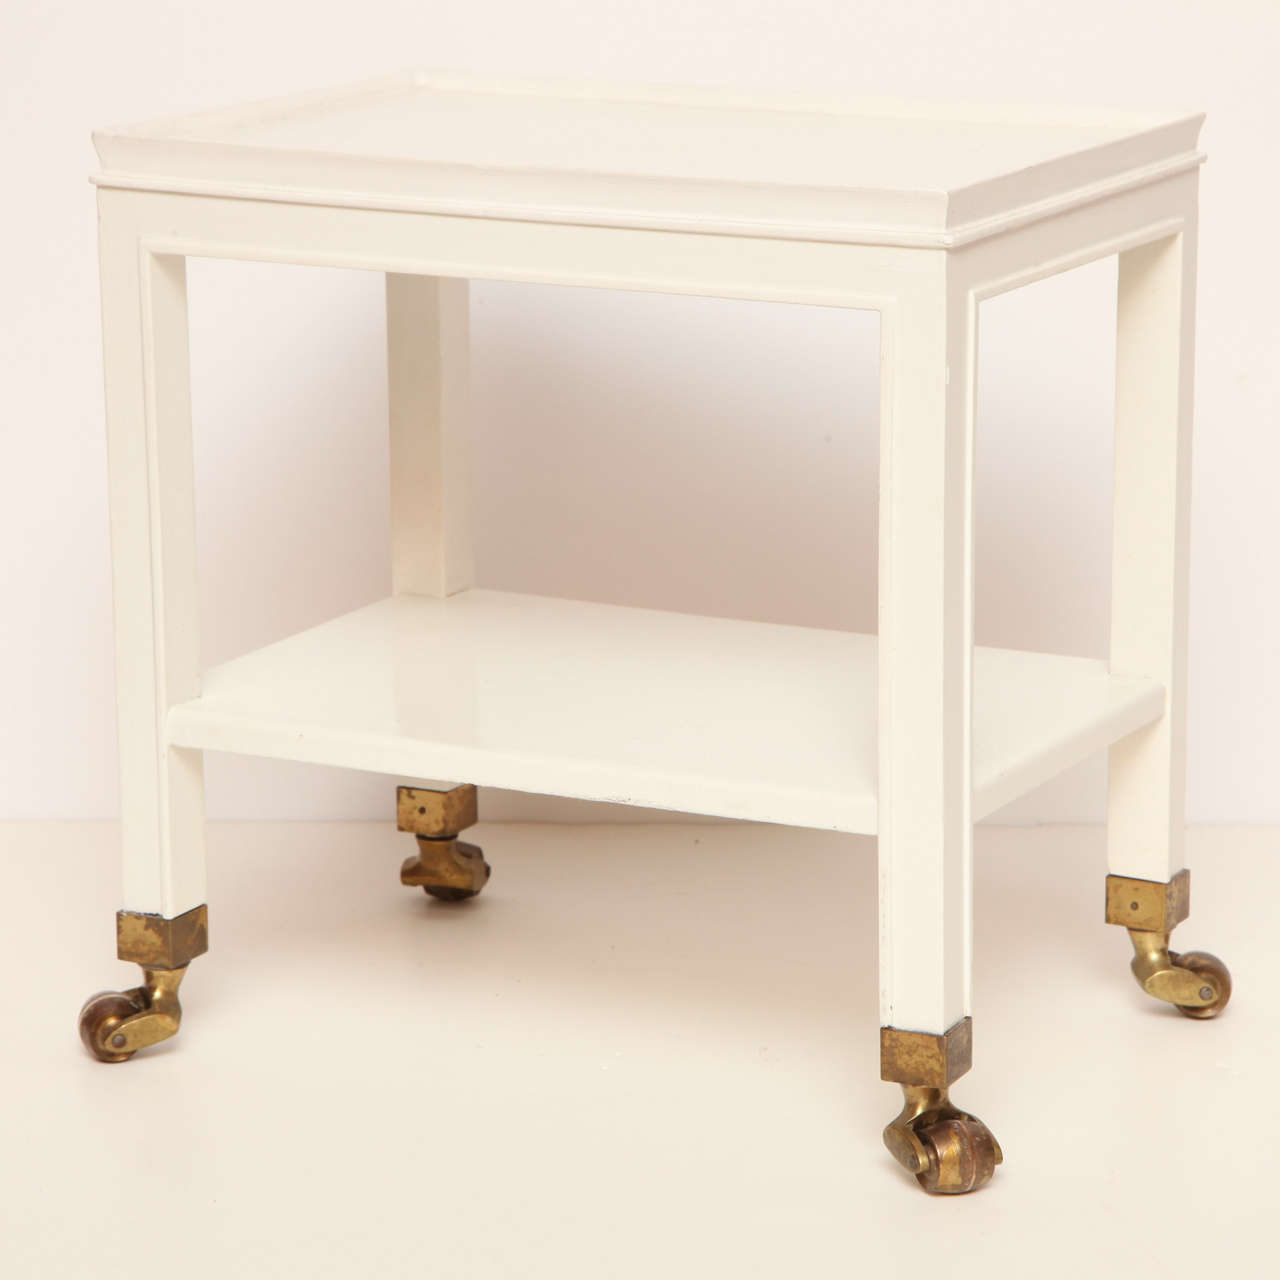 Three Telephone Tables by Jansen from the Collection of Brooke Astor 6